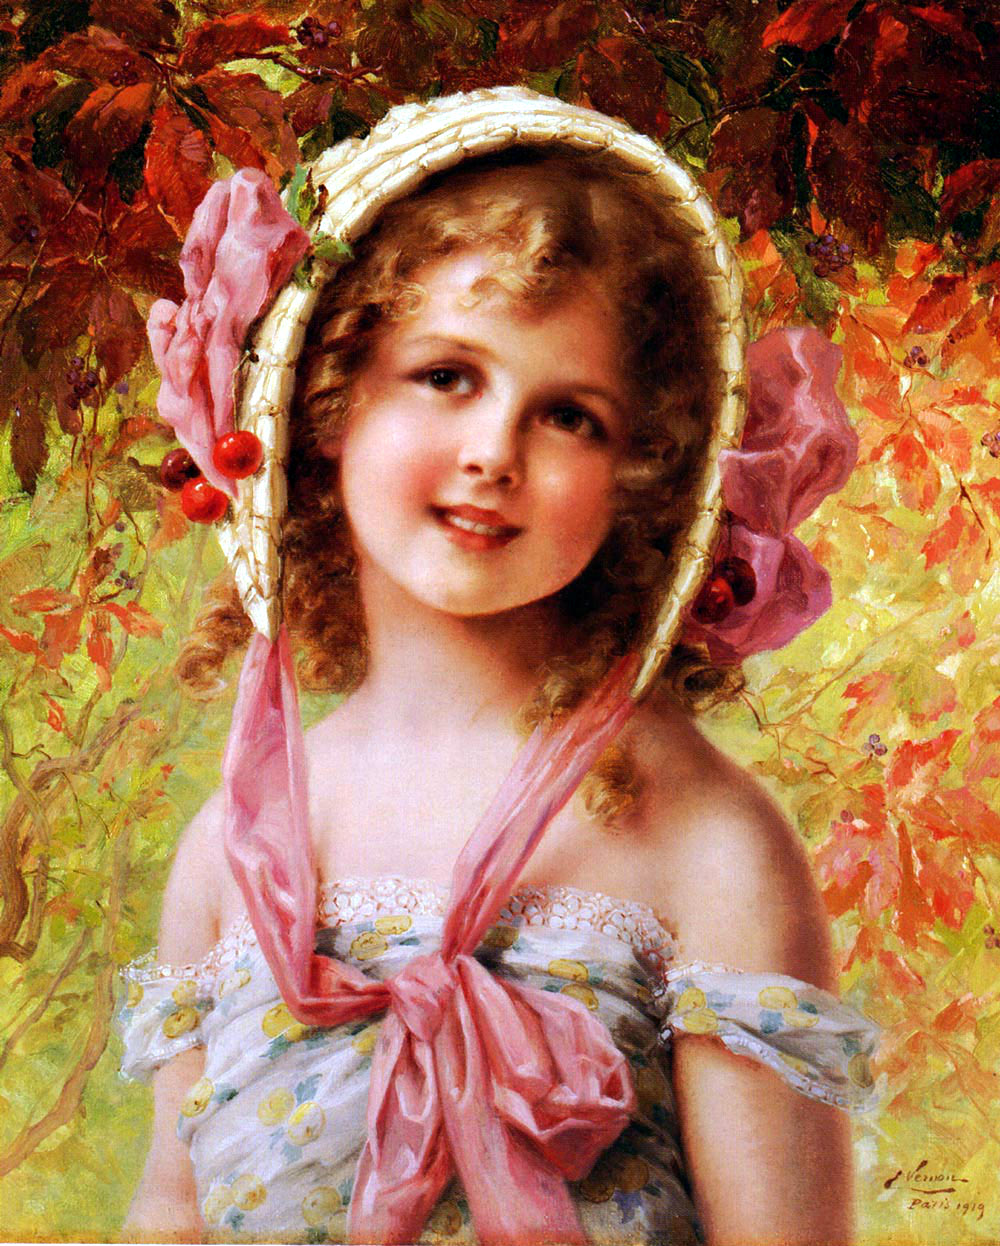 The Cherry Bonnet by Emile Vernon, Date unknown